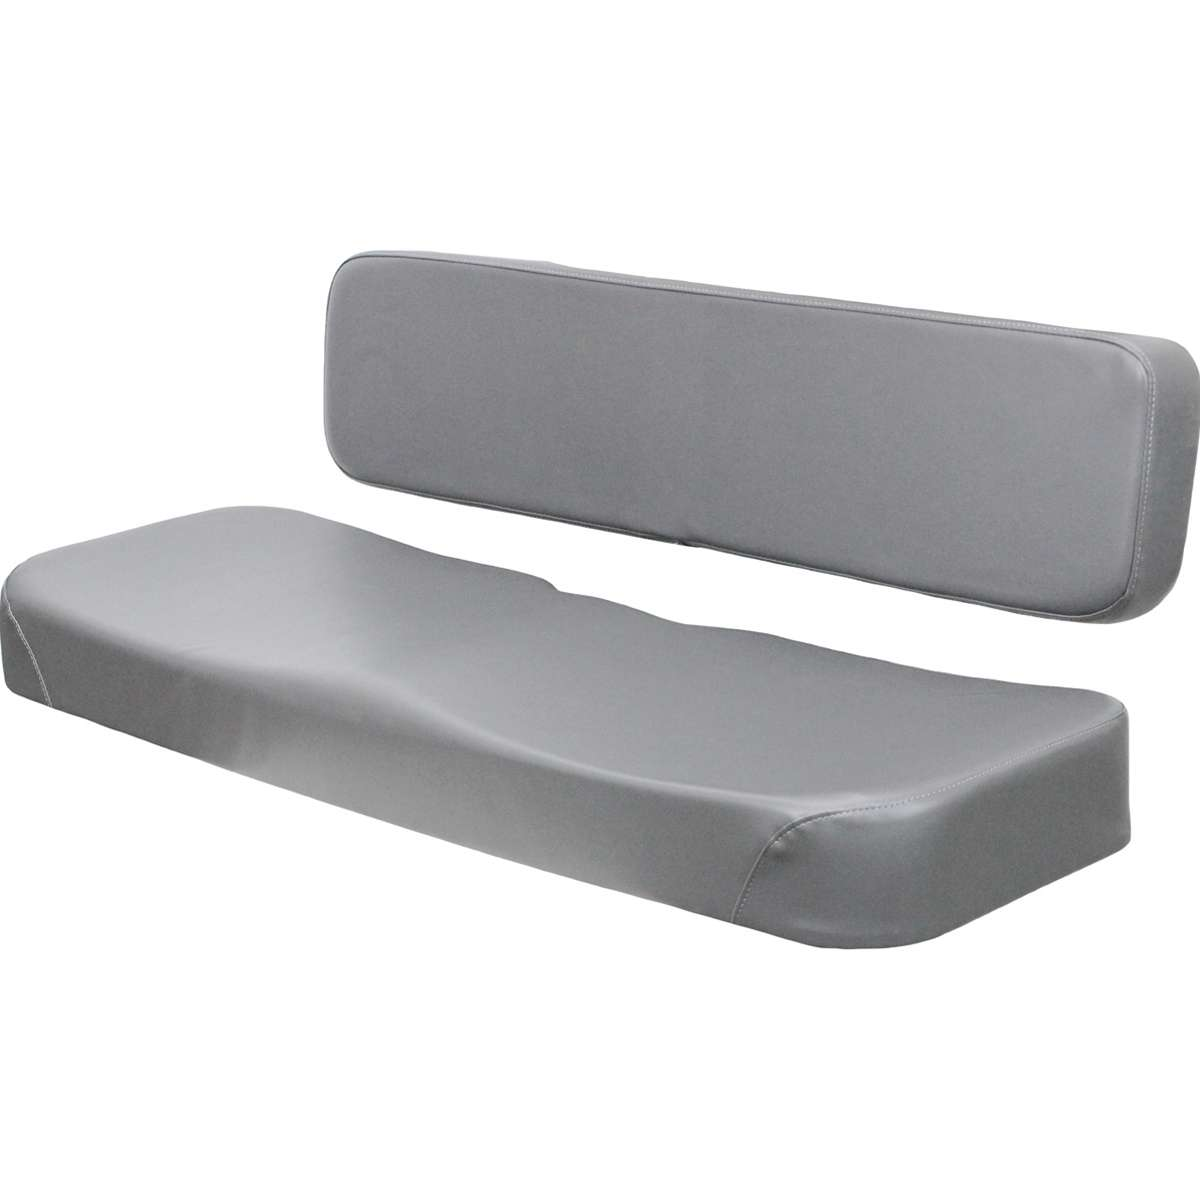 Kubota RTV 900-1140 Series Gray Utility Vehicle Bench Seat Kit